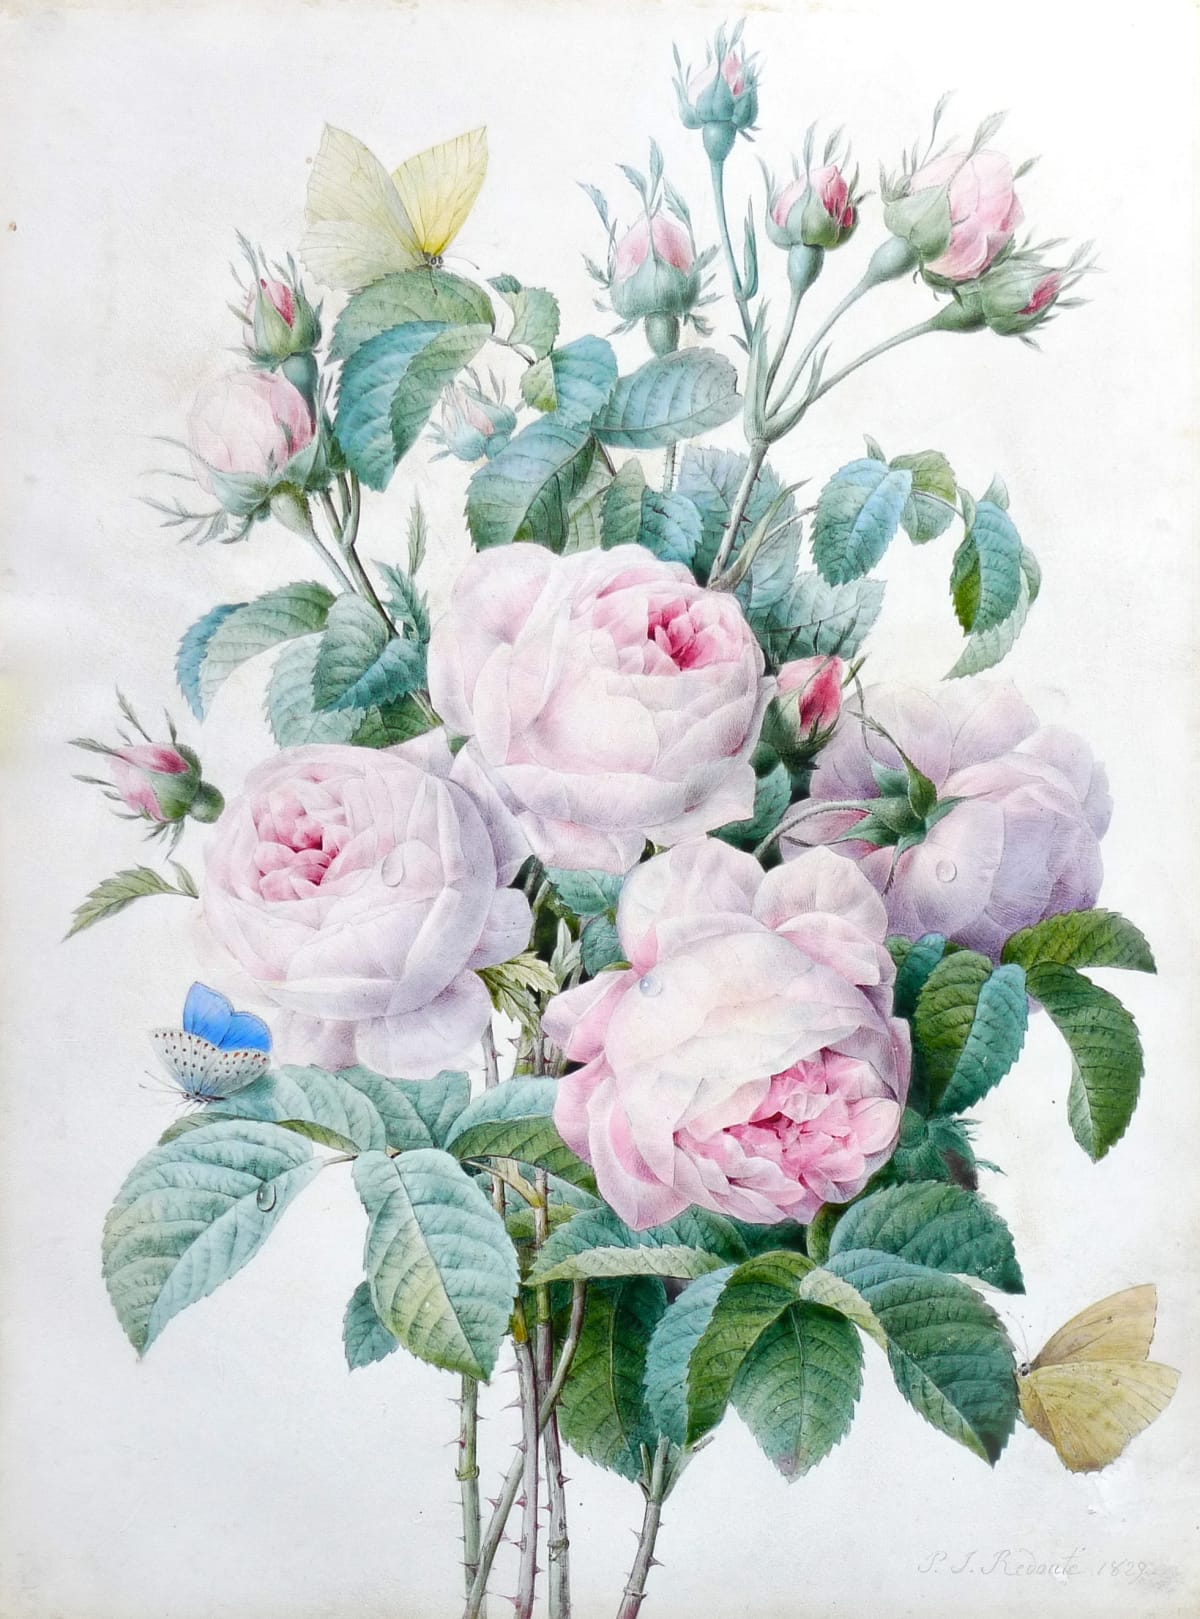 Pierre Joseph Redoute Spray of Pink Roses, with a Brimstone, one Blue and two yellow Butterflies, 1829 Pencil and Watercolour on Vellum SOLD